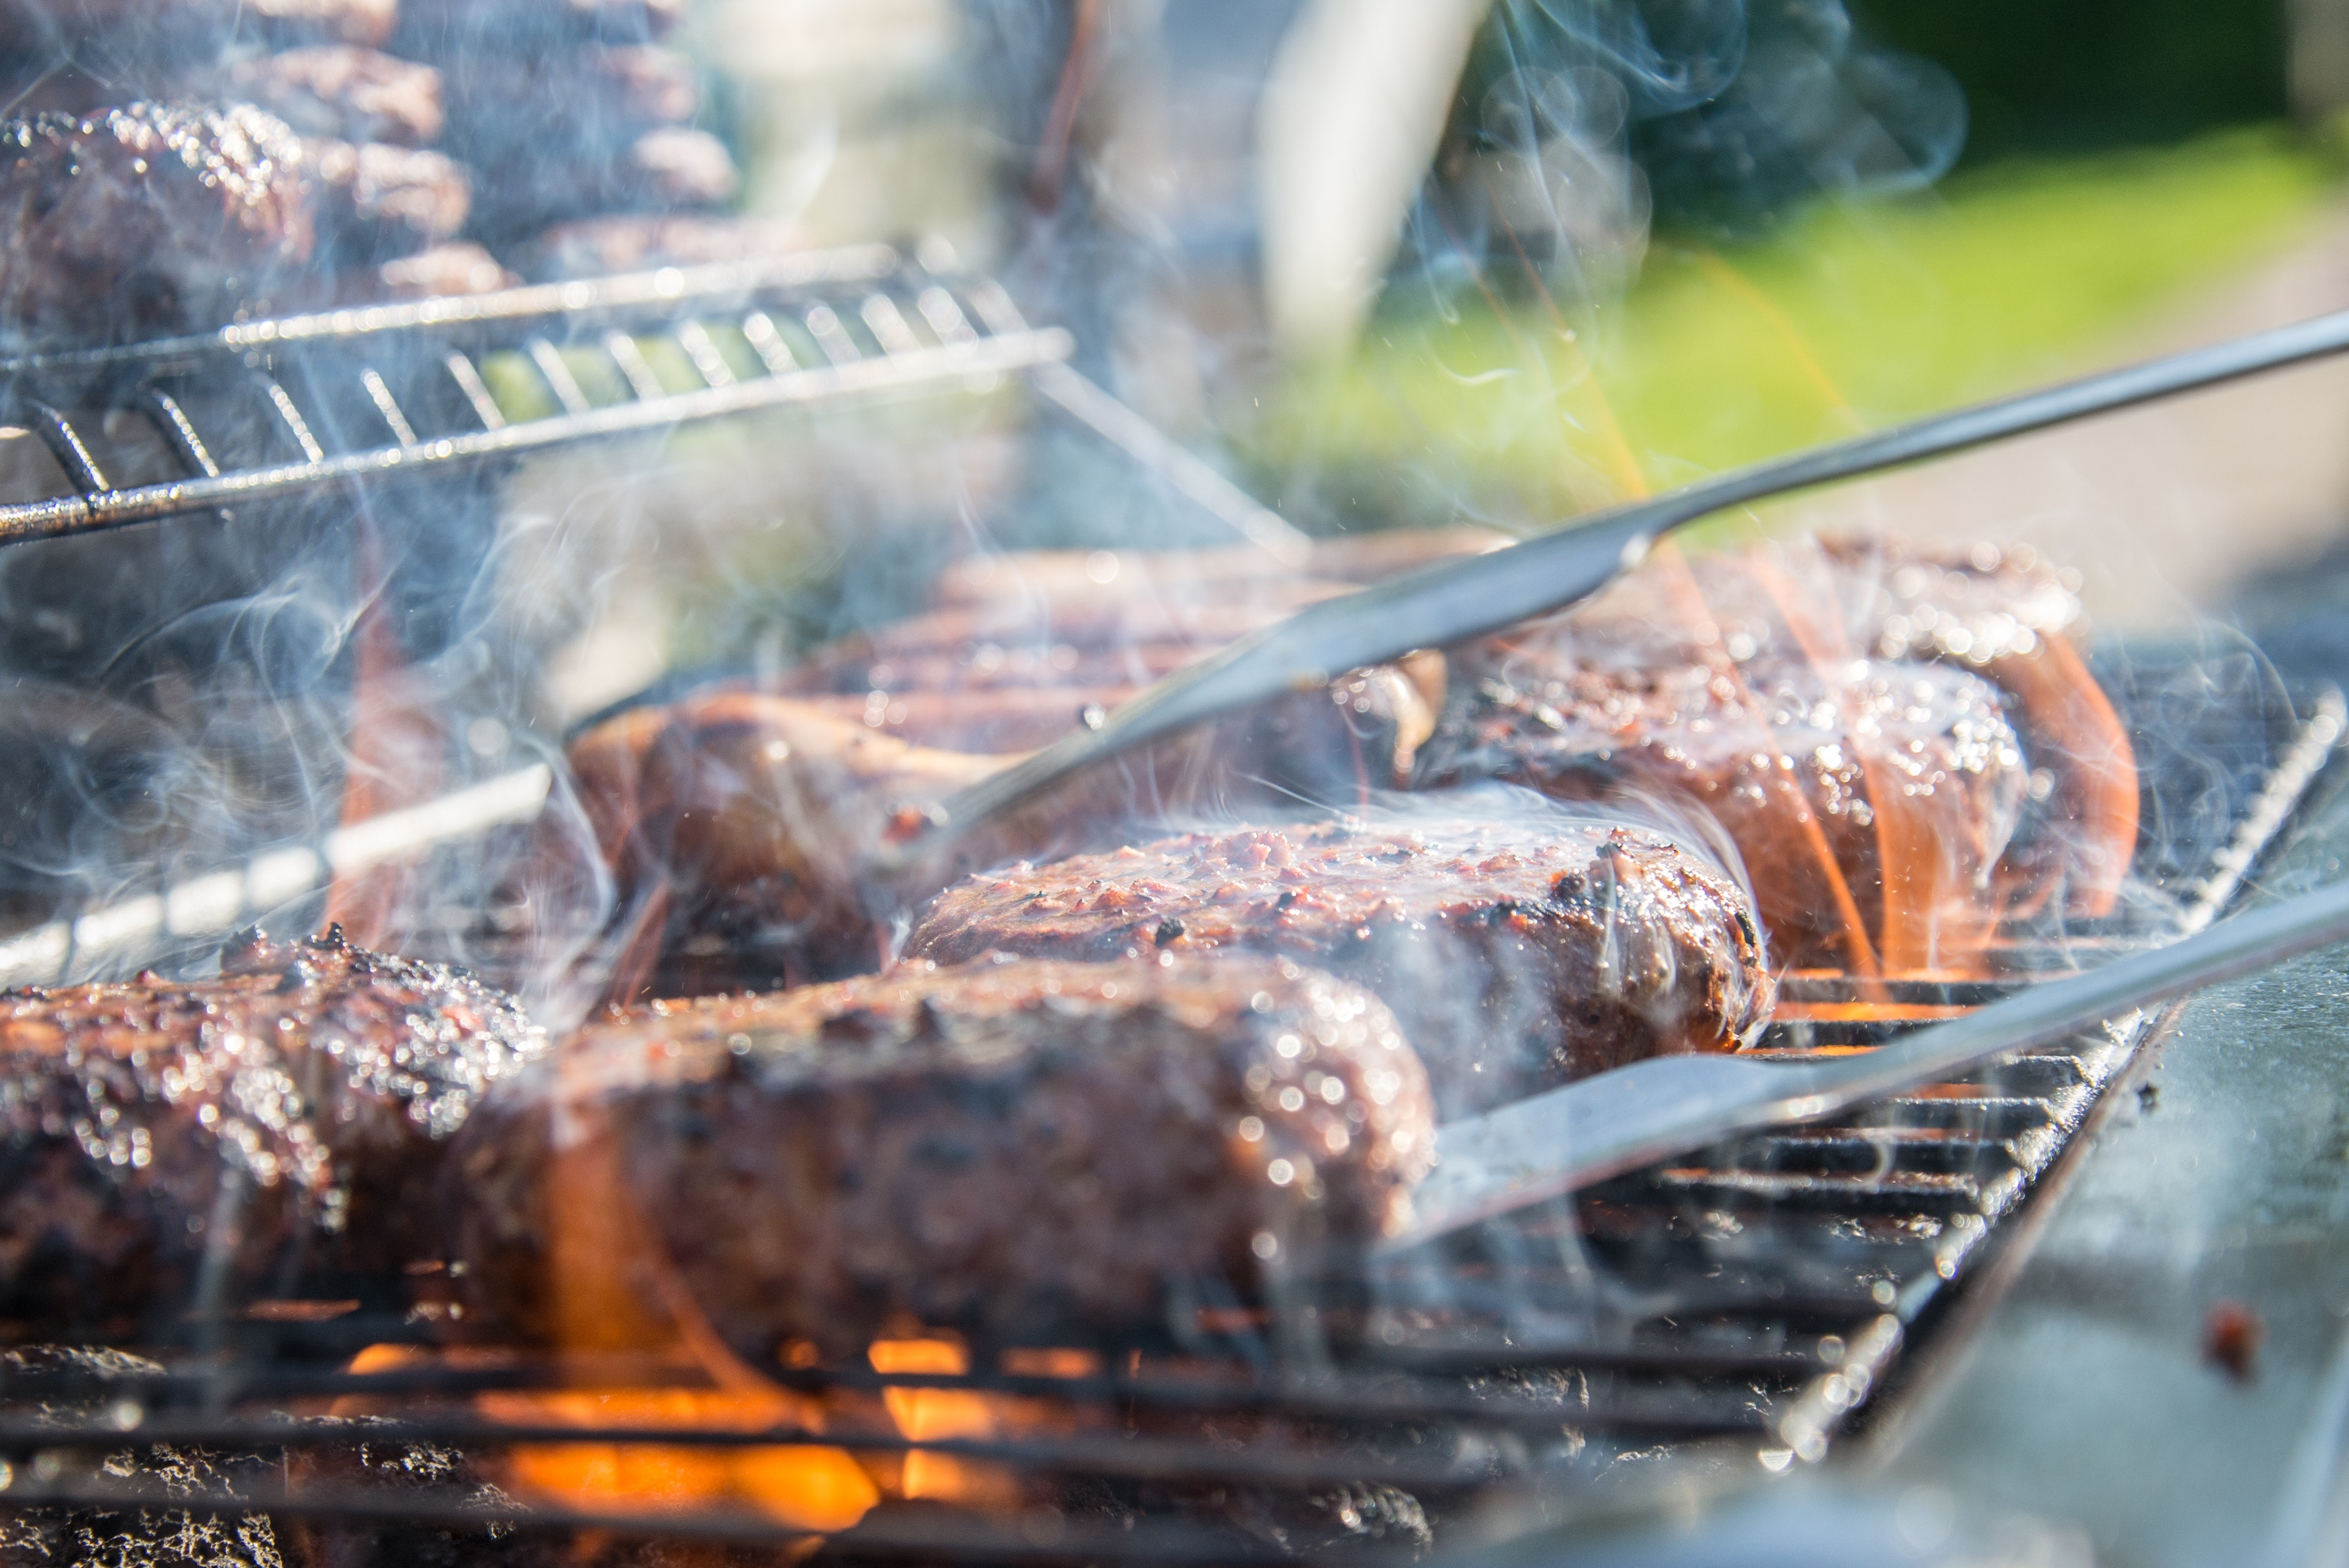 An in-depth review of the best BBQ tools available in 2019.